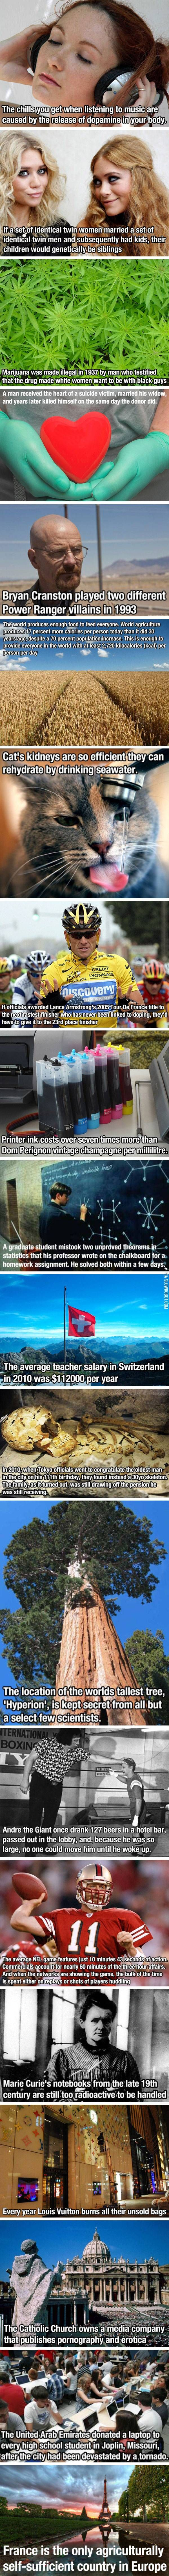 Facts. Some are way cool. Check out that teacher salary in Switzerland . Katherine that's the place to be, maybe take a side trip and see if the hills are still alive?